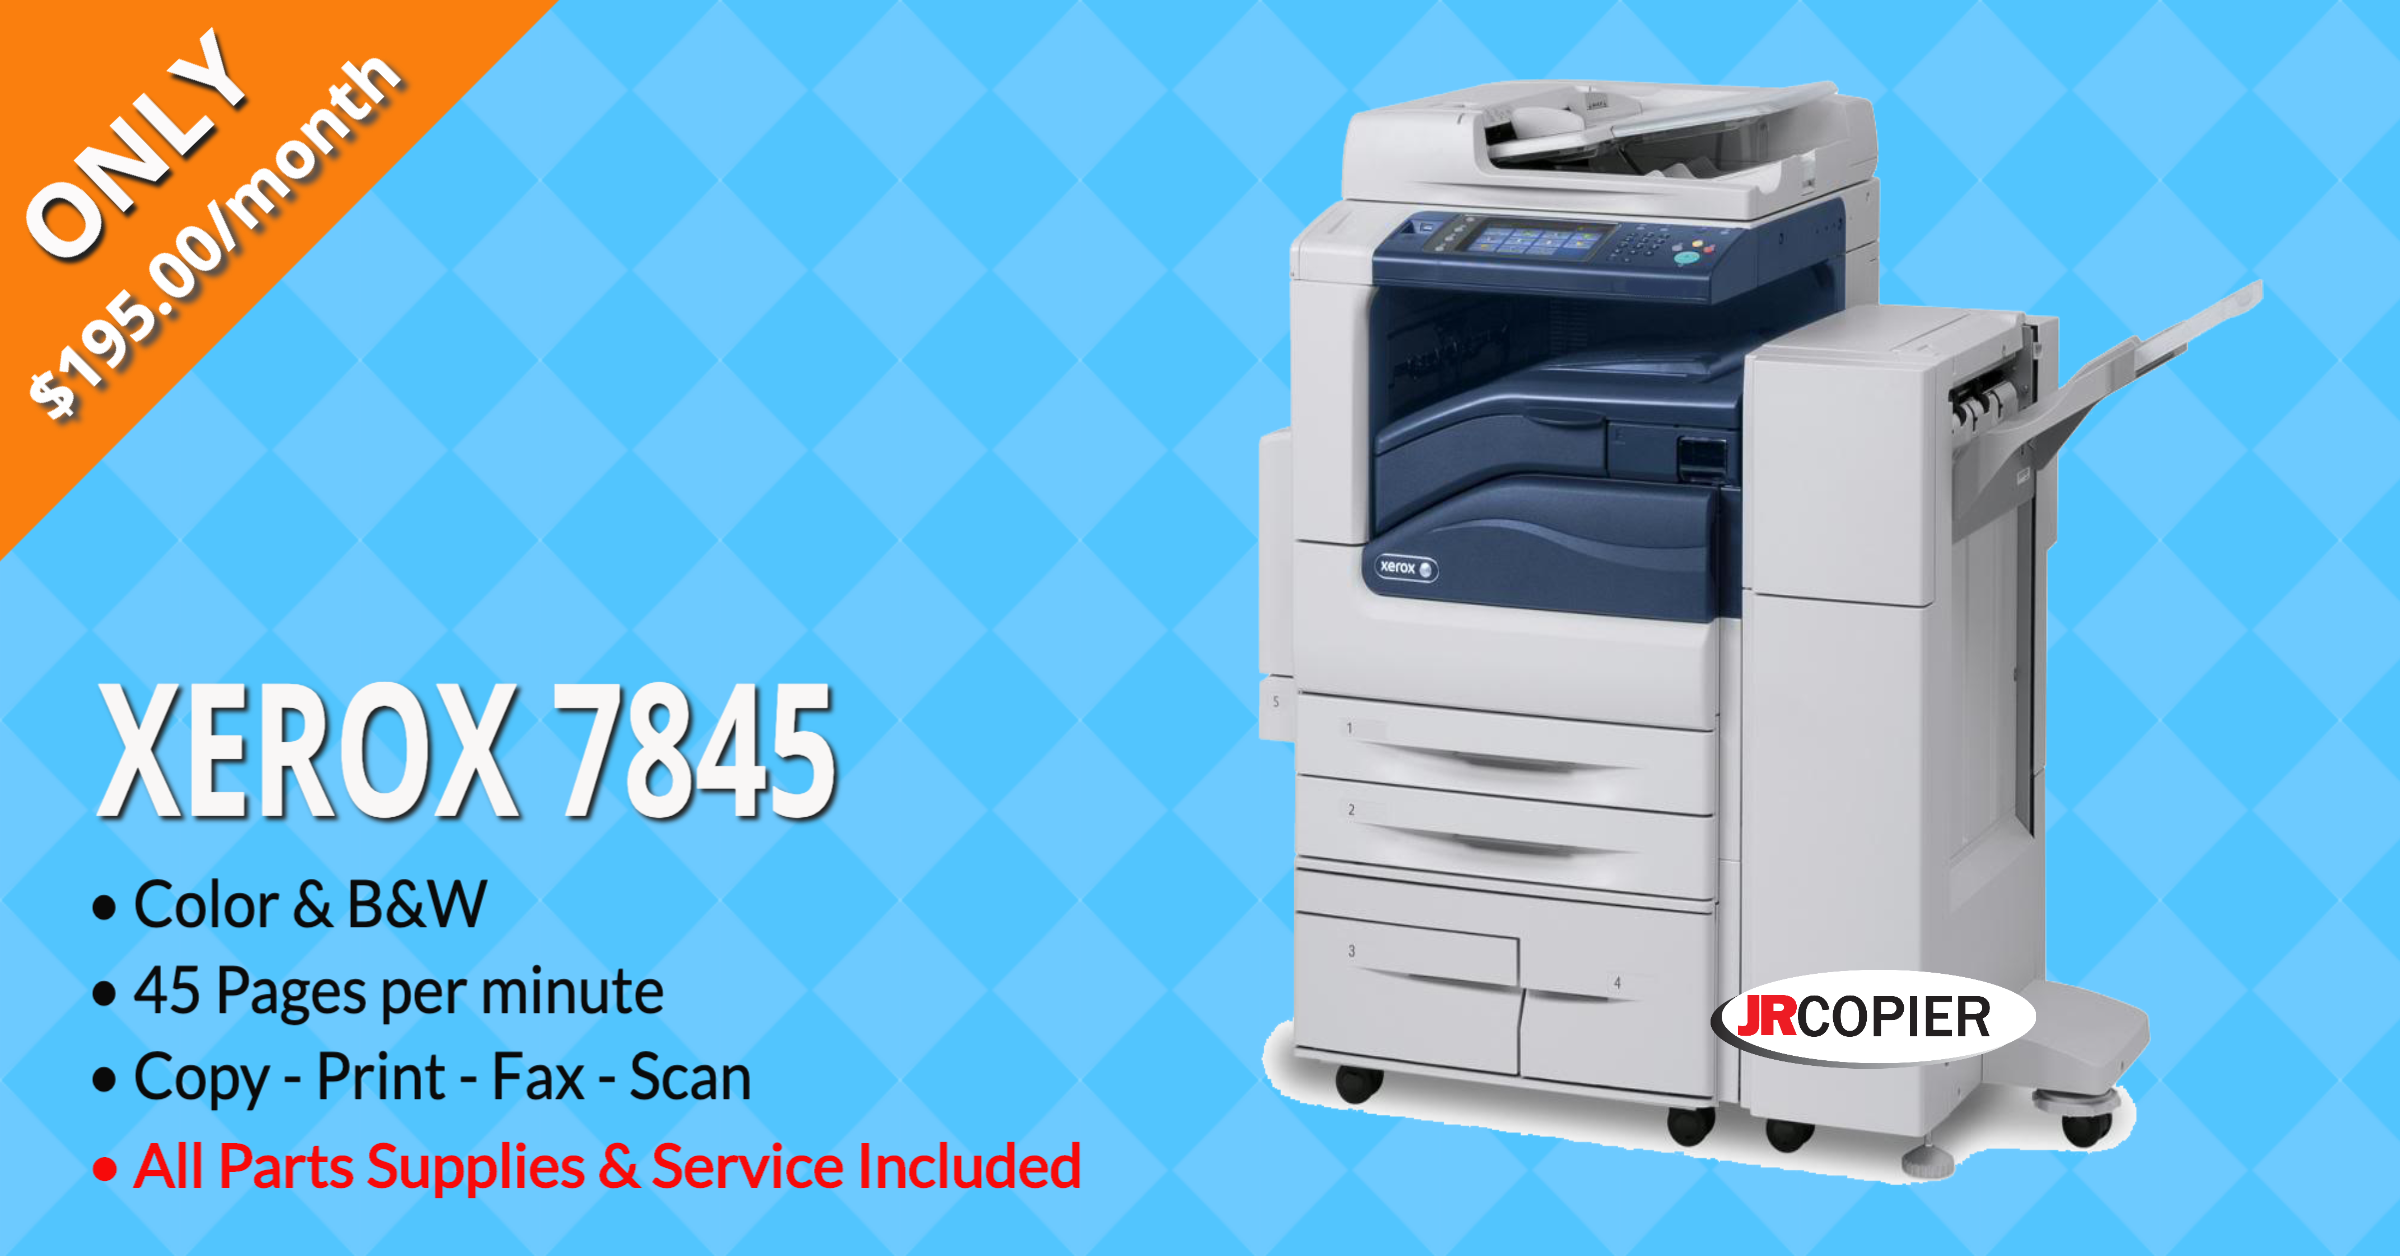 Copy Machine Companies 98013, 98070